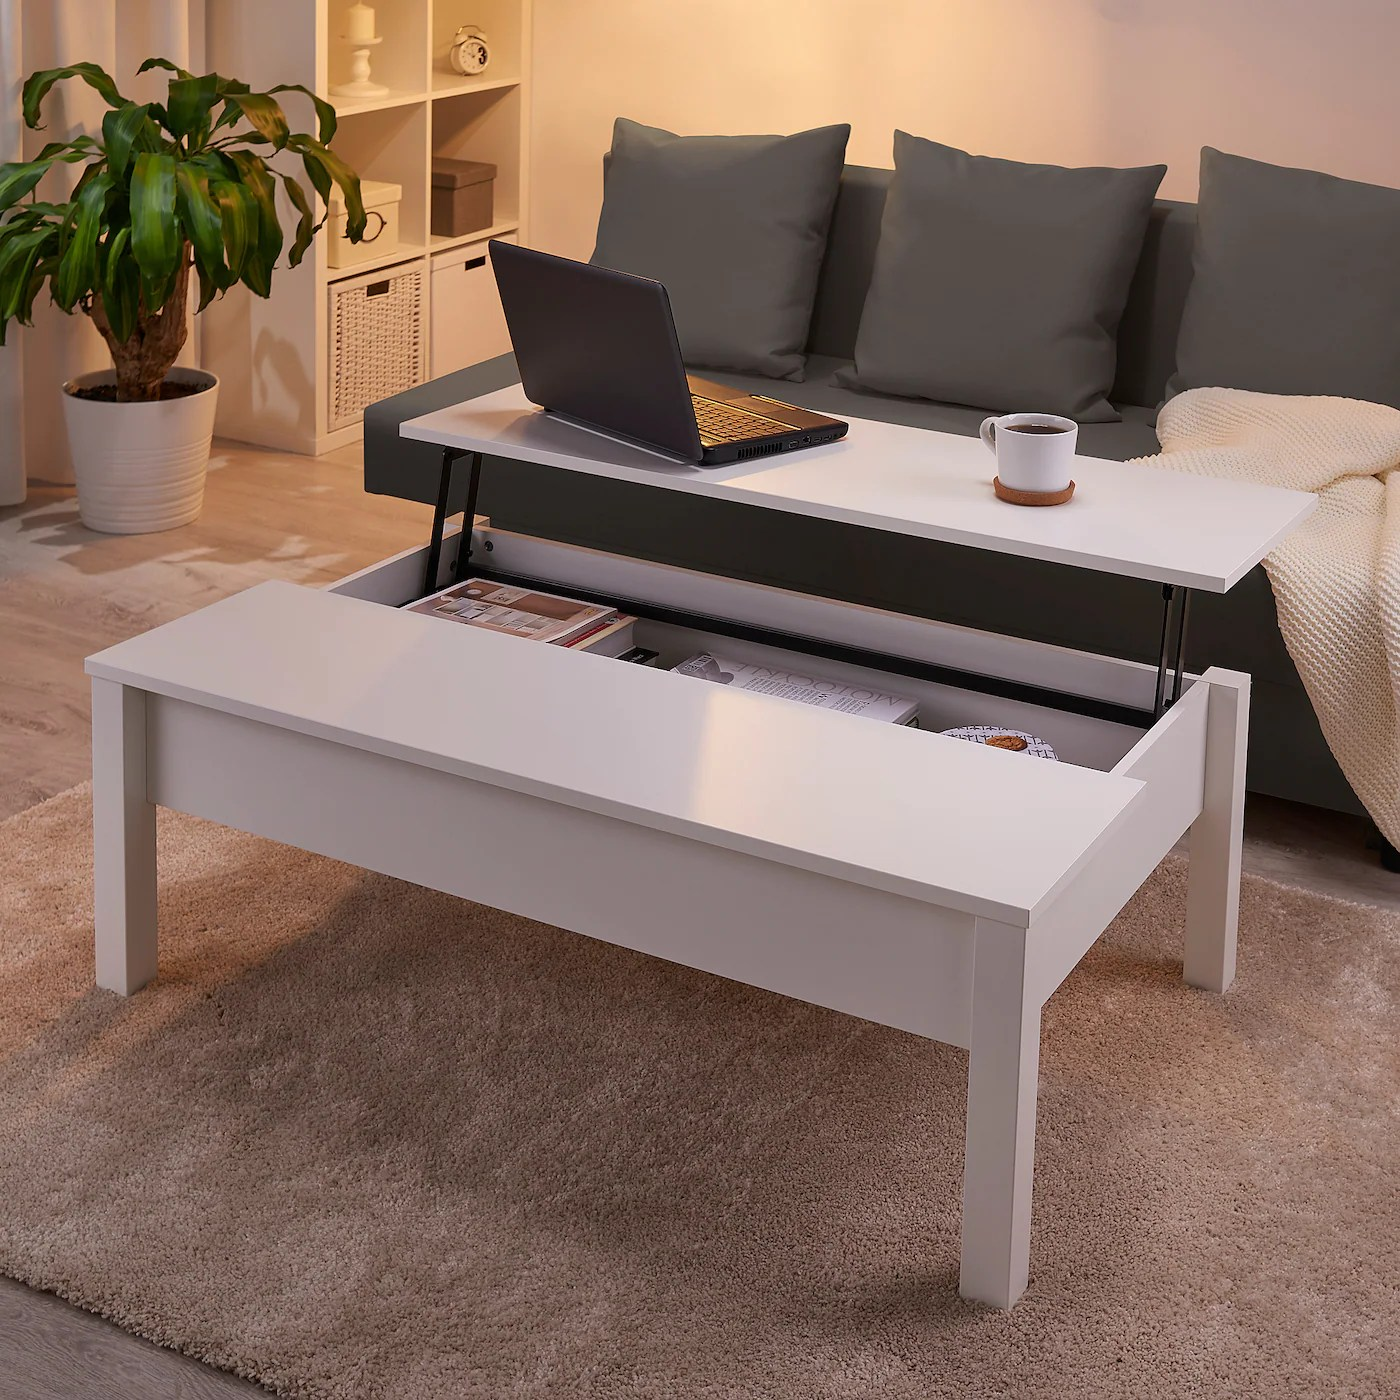 trulstorp coffee table white 45 1 4x27 1 2